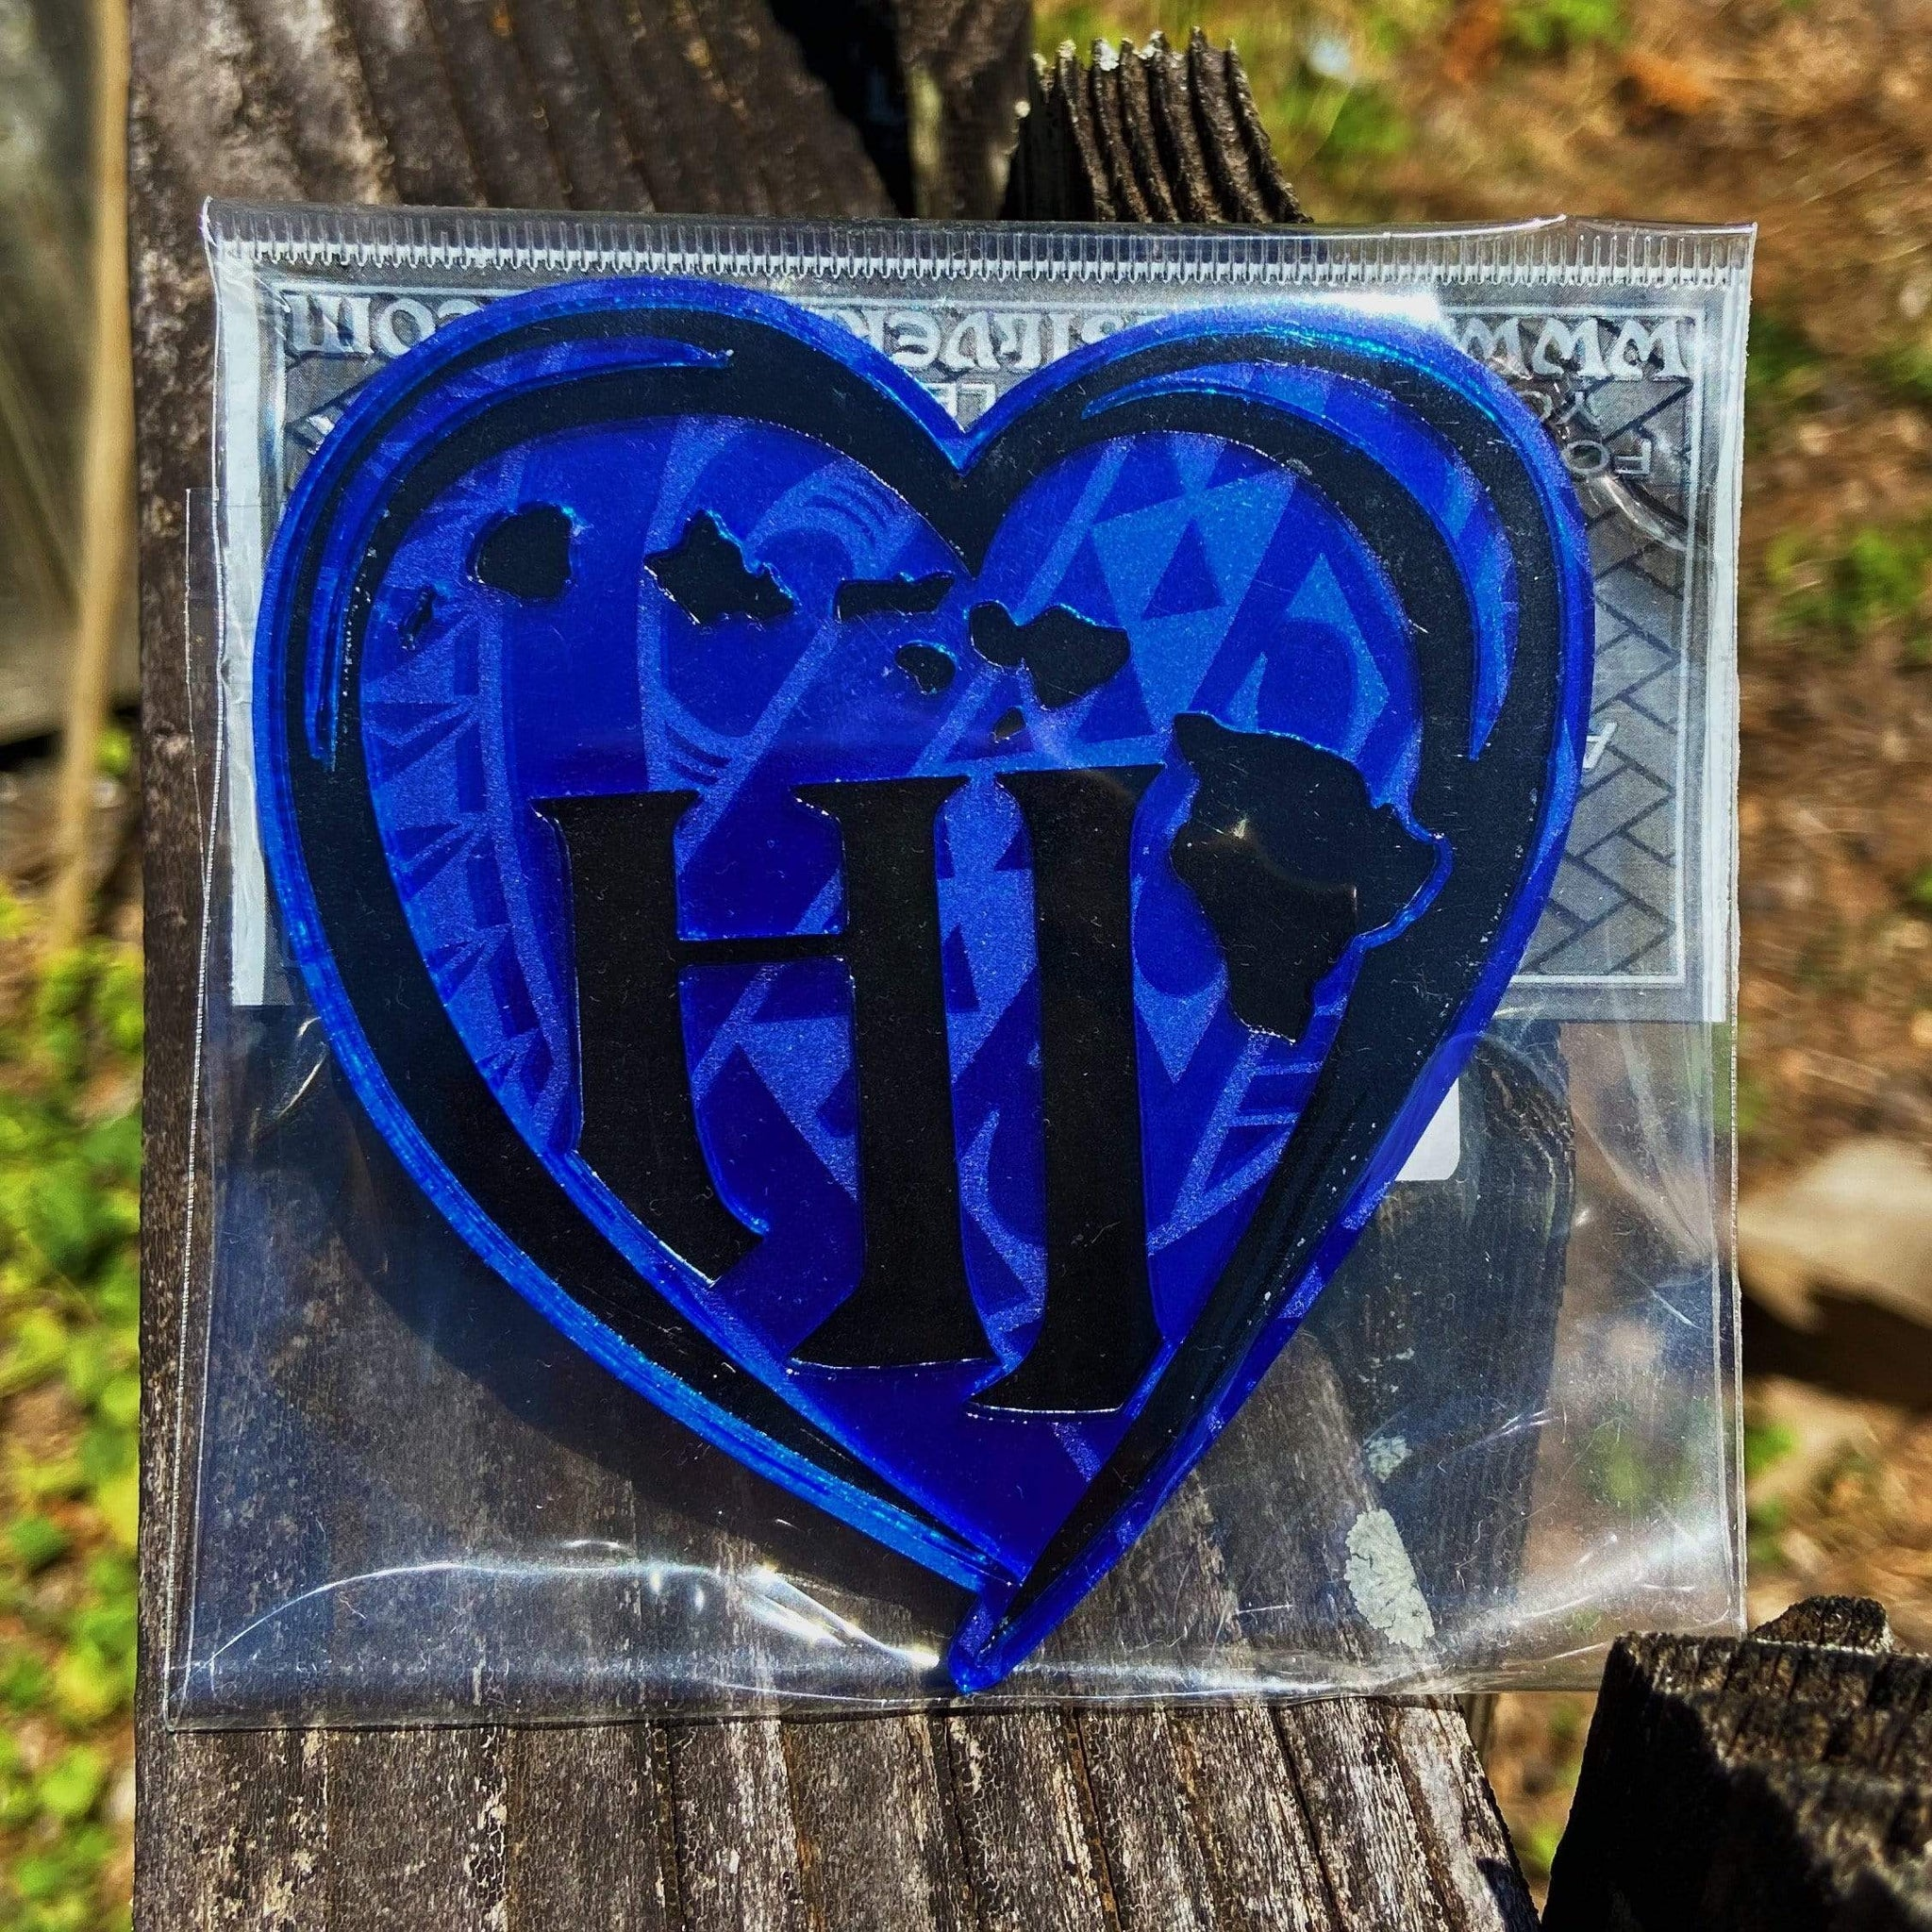 Born Hawaii Sticker BLUE SMALL HEART LOGO ACRYLIC DECAL BLUE